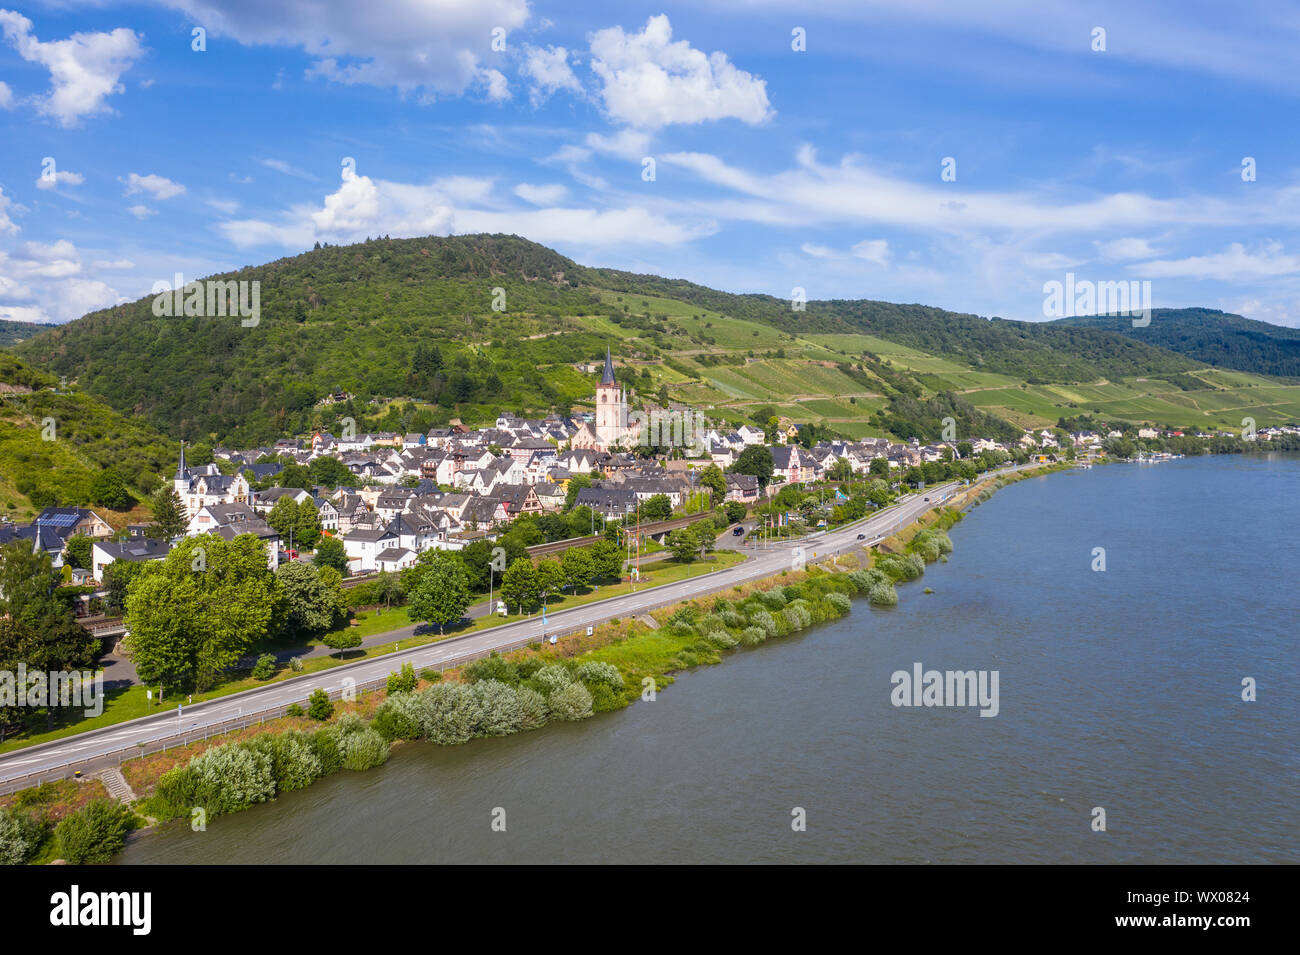 The Rhine River at Lorch, UNESCO World Heritage Site, Middle Rhine valley, Hesse, Germany, Europe Stock Photo